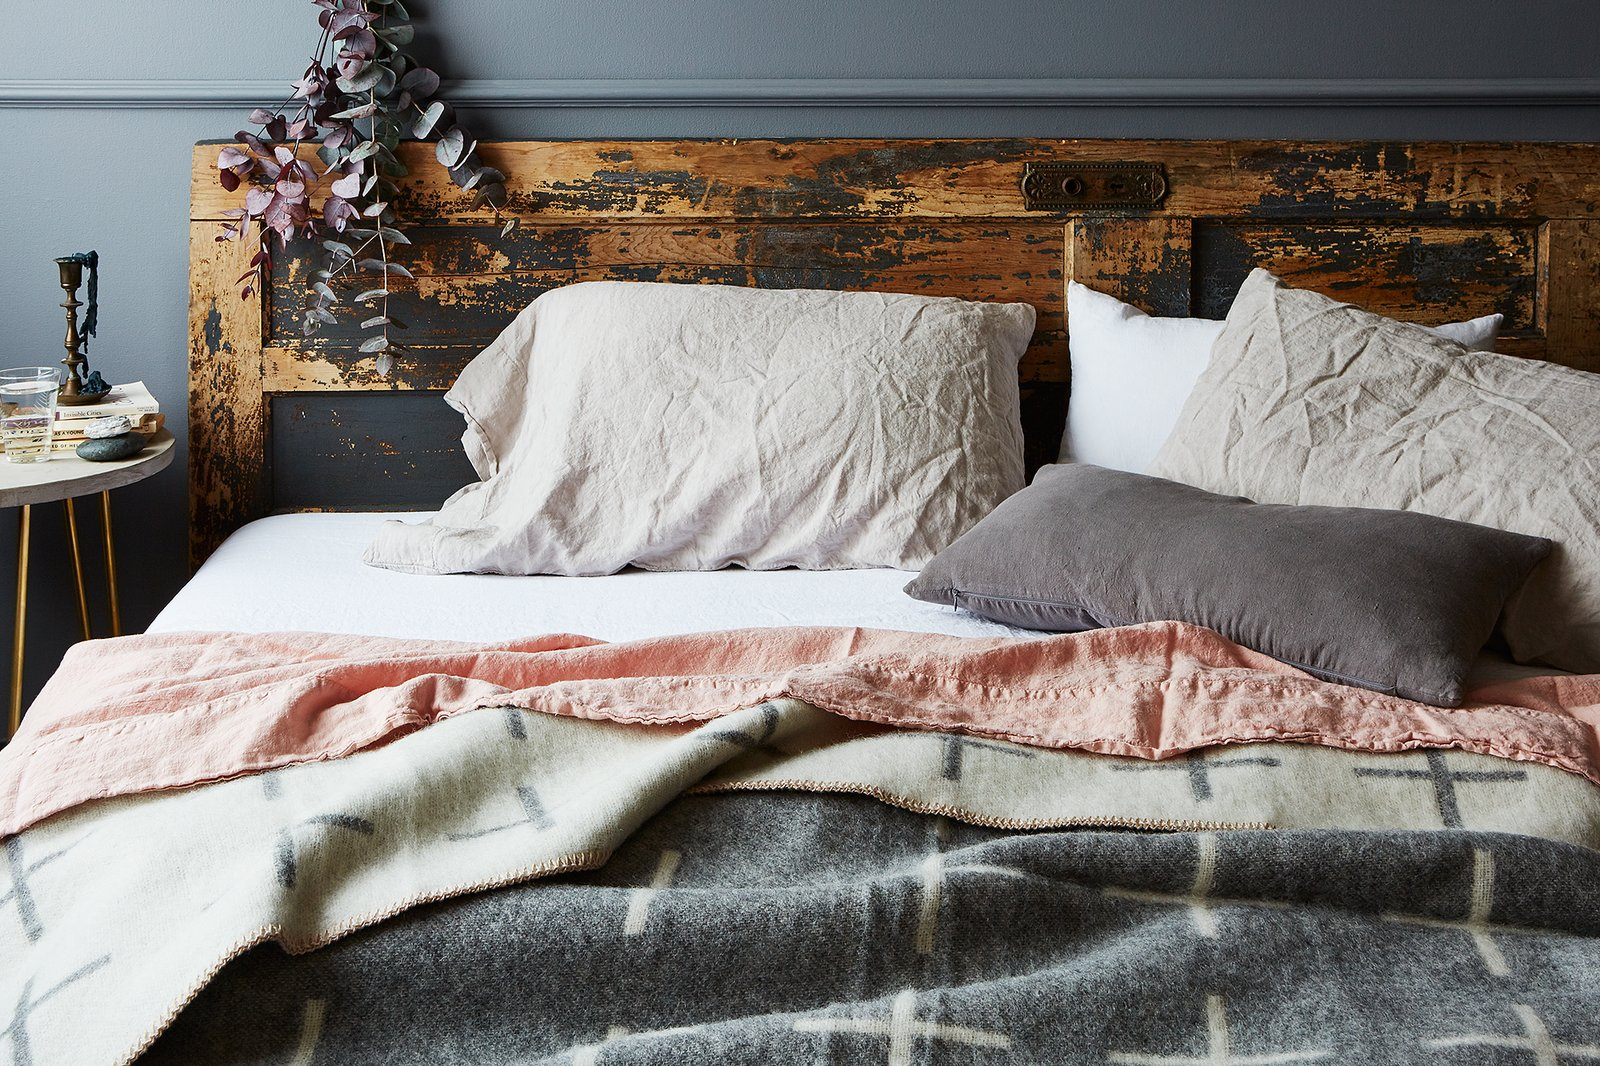 stonewashed linen bedding by food  dwell - stonewashed linen bedding